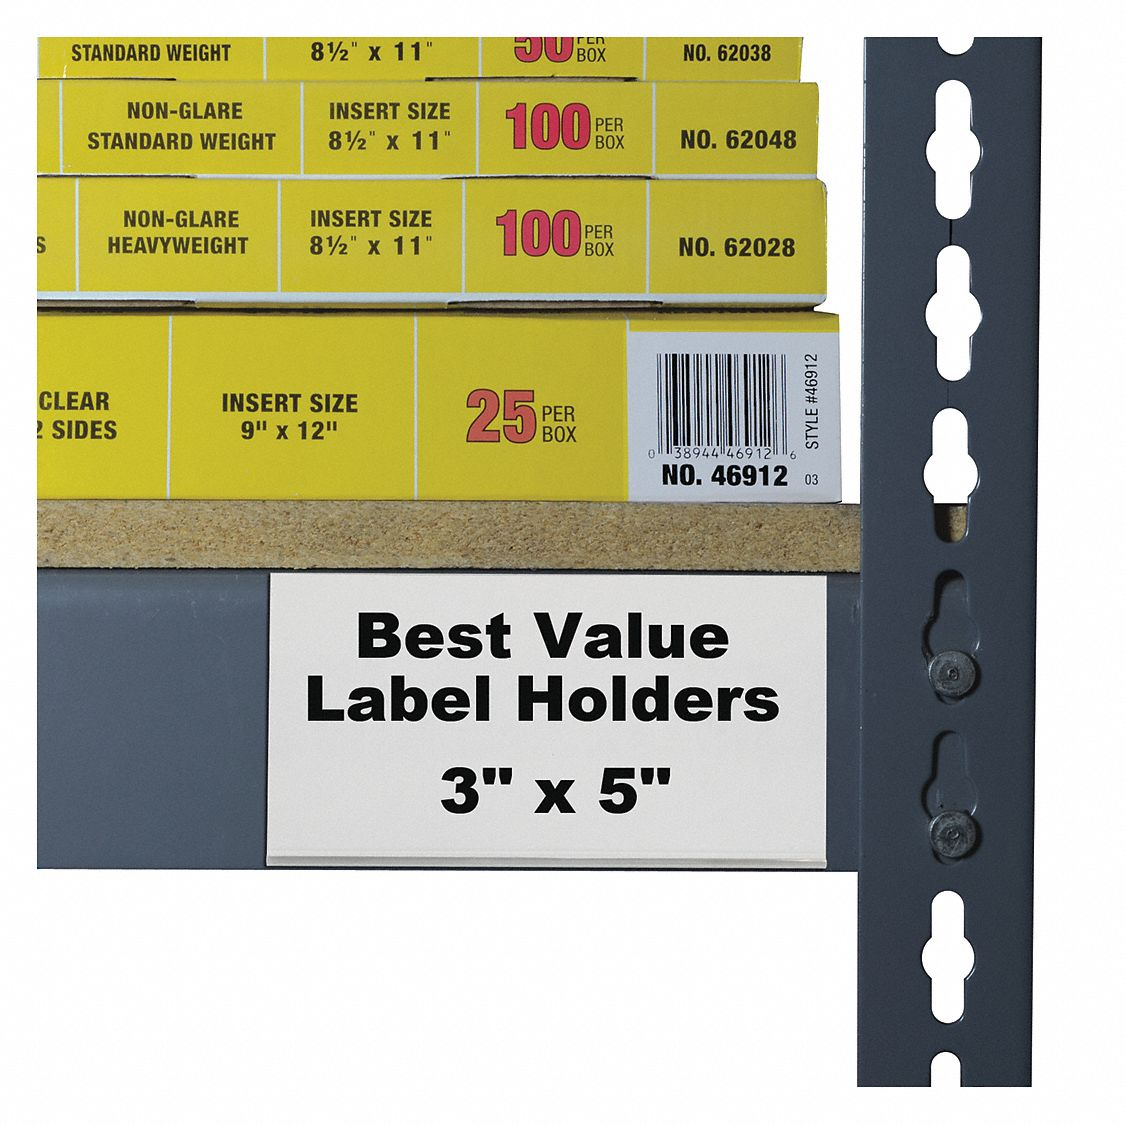 Plastic Label Holder, Clear, 3 inL x 5 inW, 50 PK